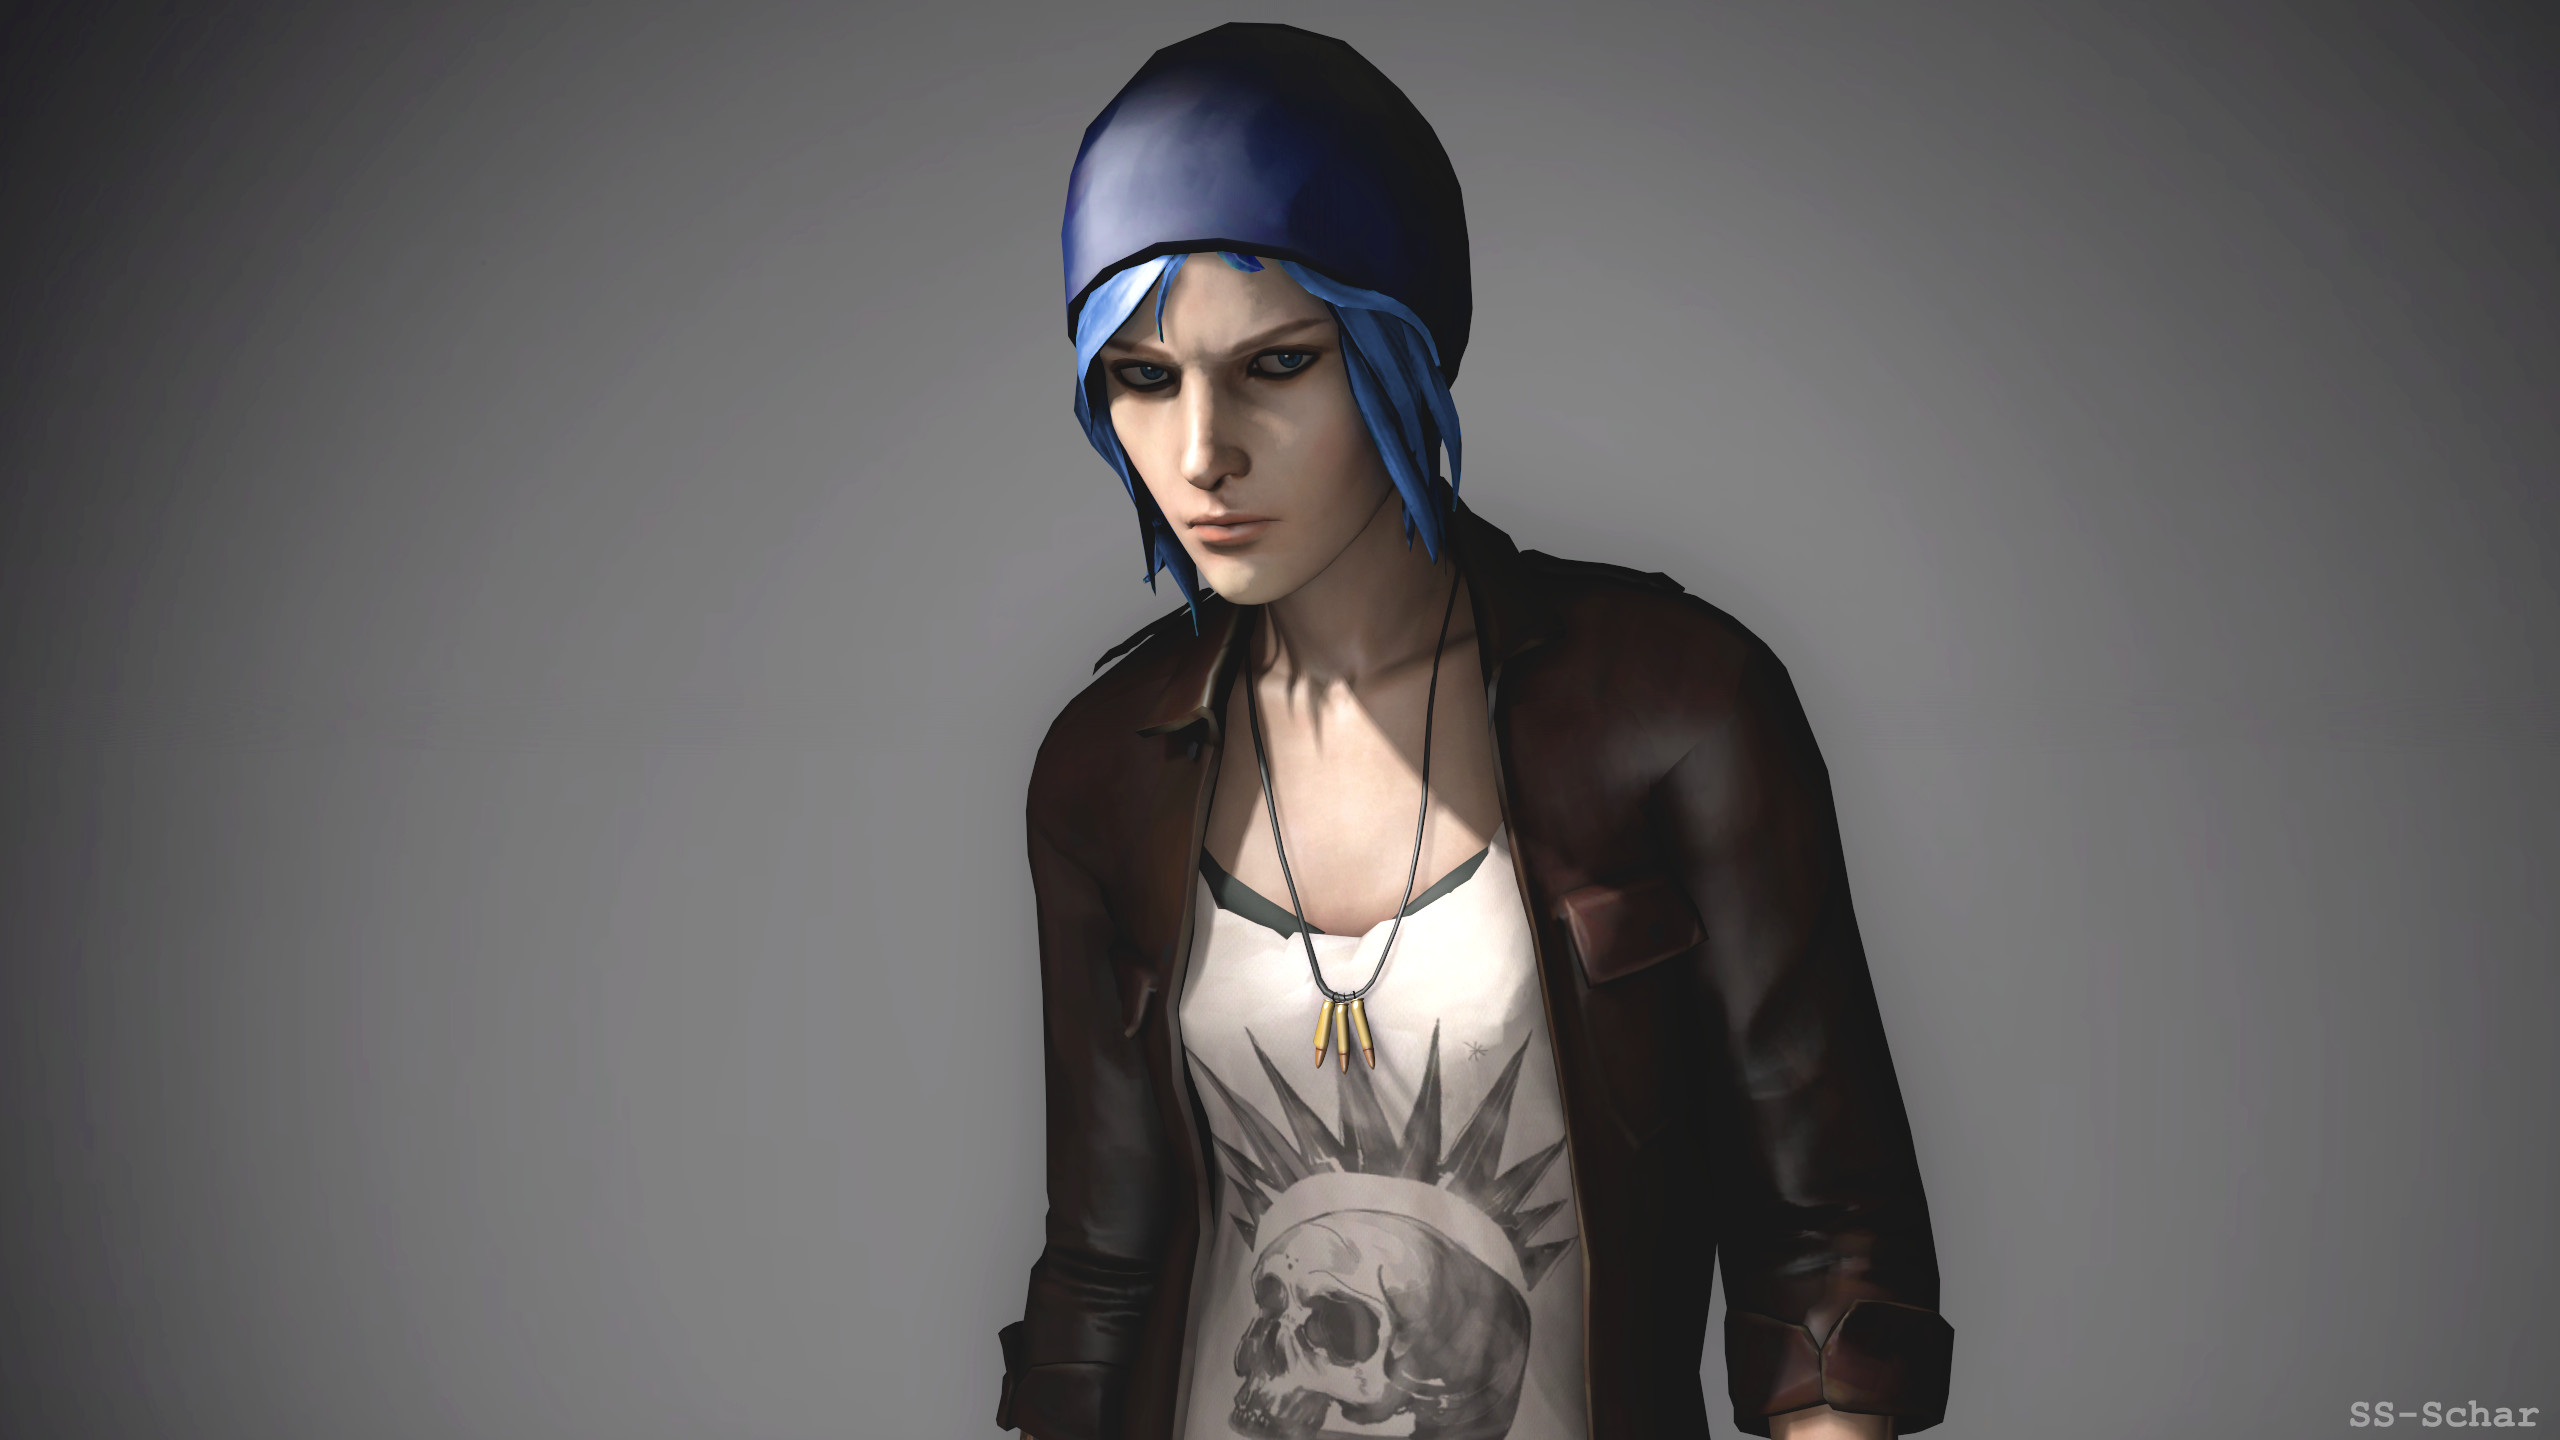 Res: 2560x1440, ... Life Is Strange - Chloe Price by SSchar